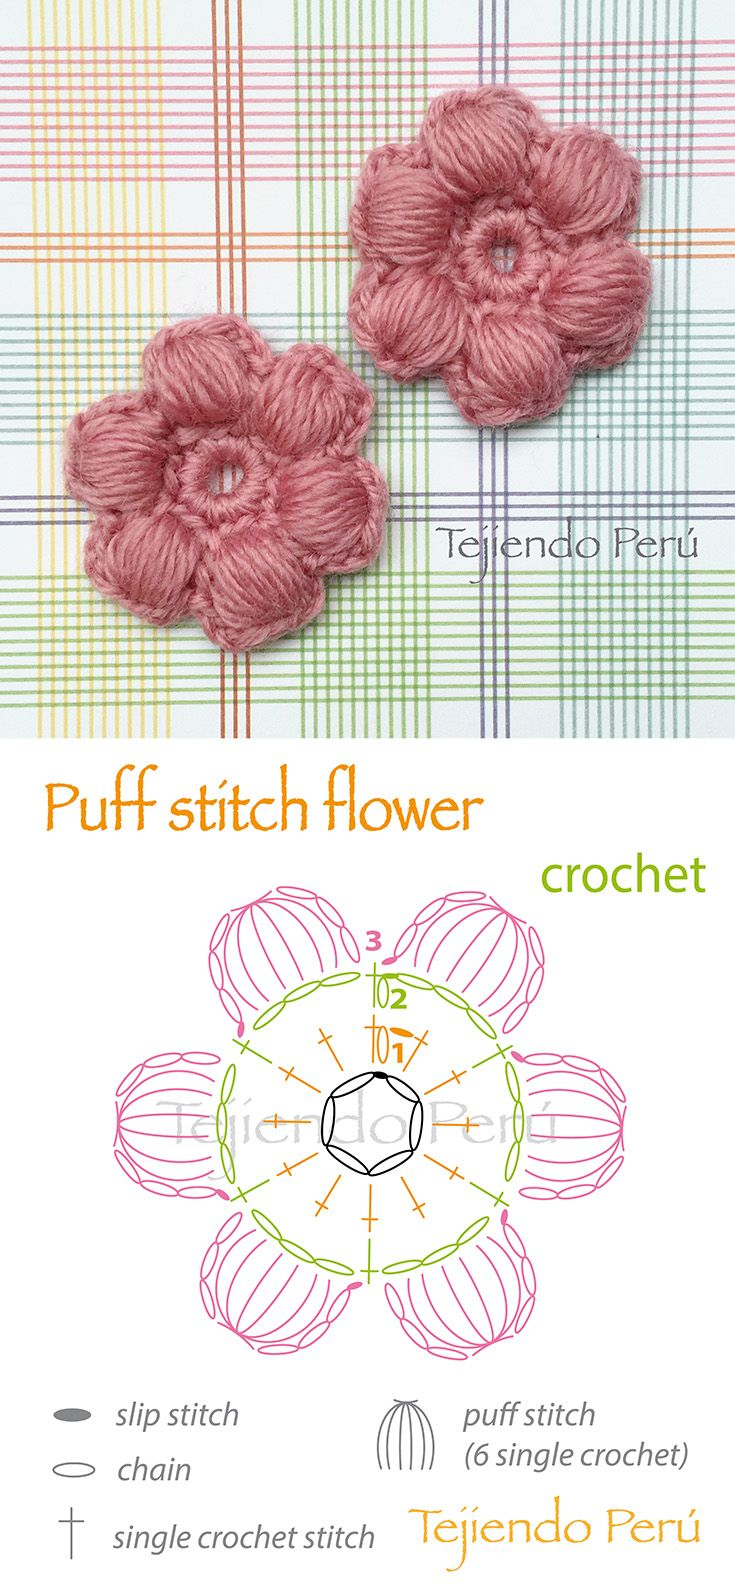 Crochet Puff Stitch Flower Diagram Pinte Patterns Ms